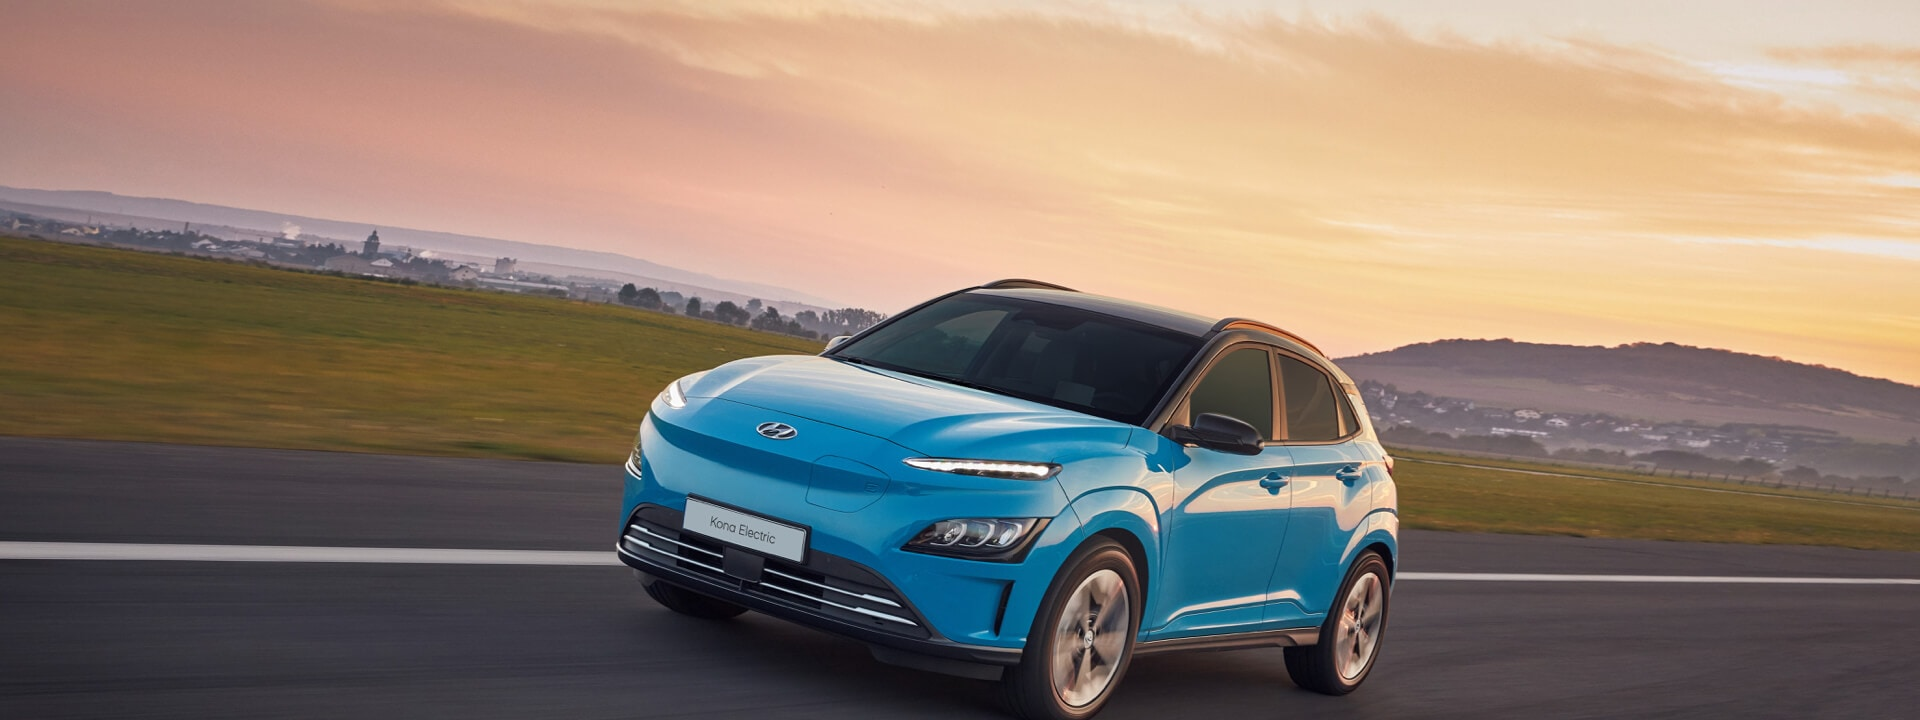 Hyundai_New-Kona-Electric_header_1920x720.jpg